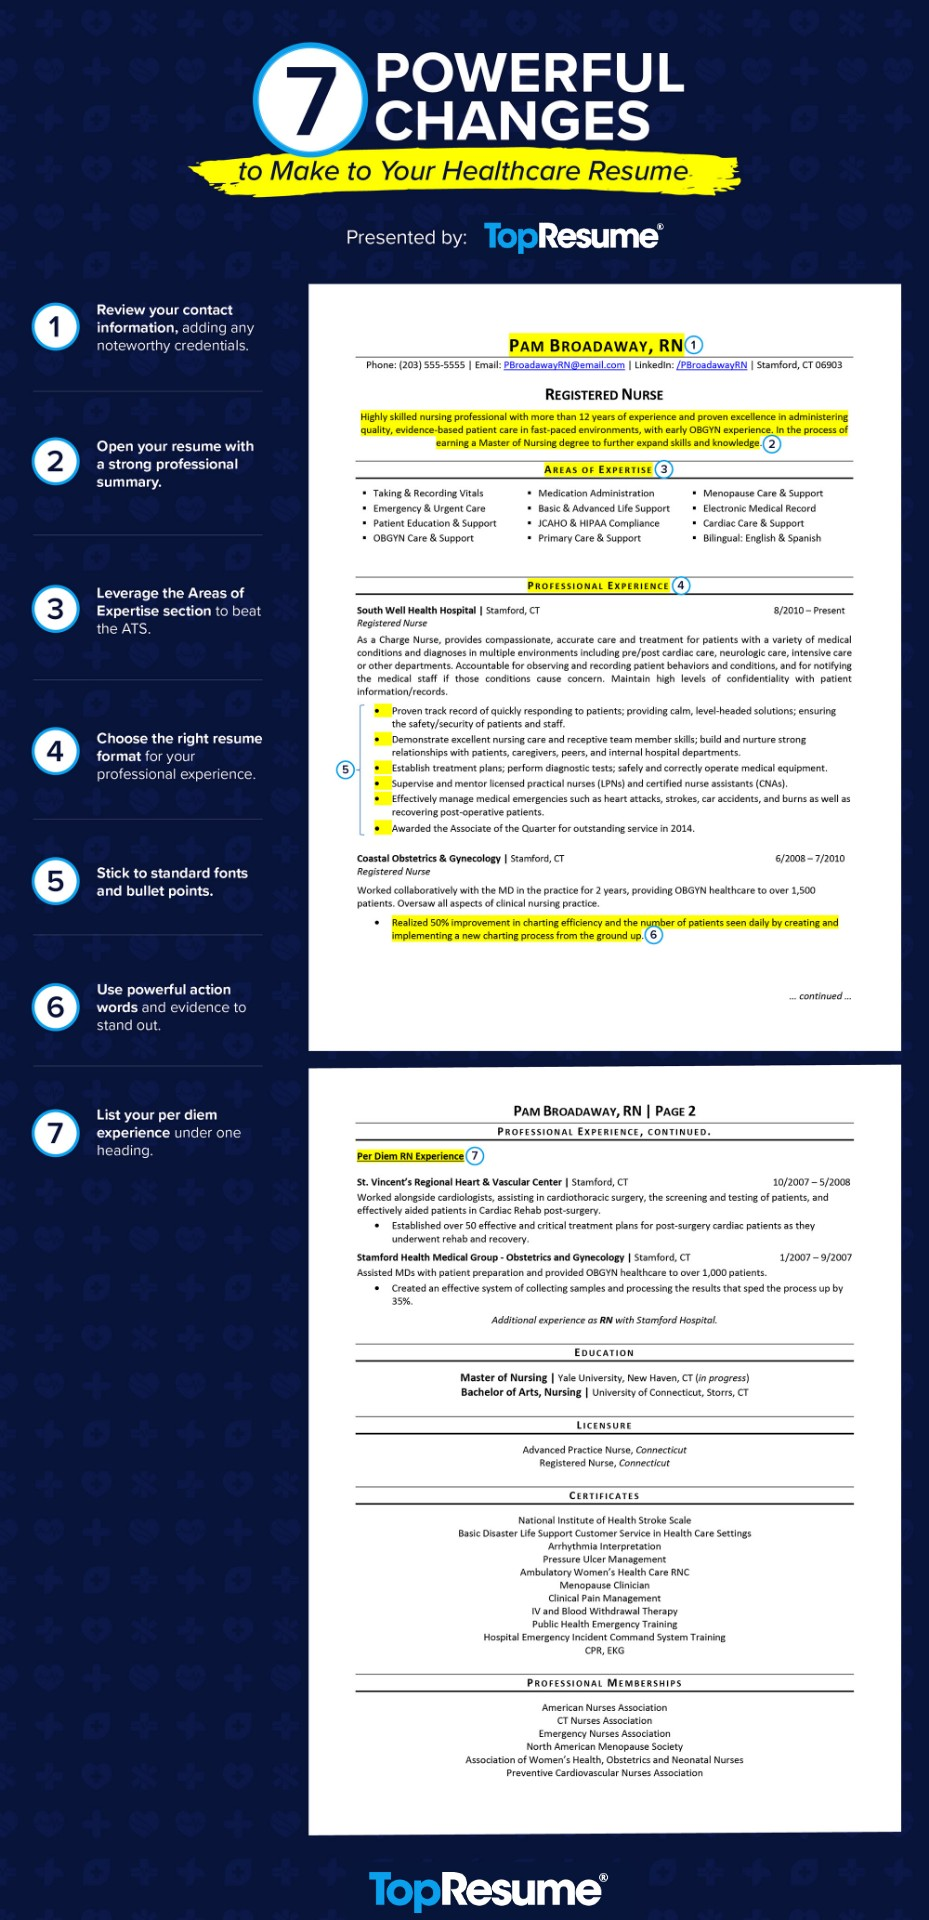 powerful changes to your healthcare resume topresume keywords for Resume Keywords For Healthcare Resume